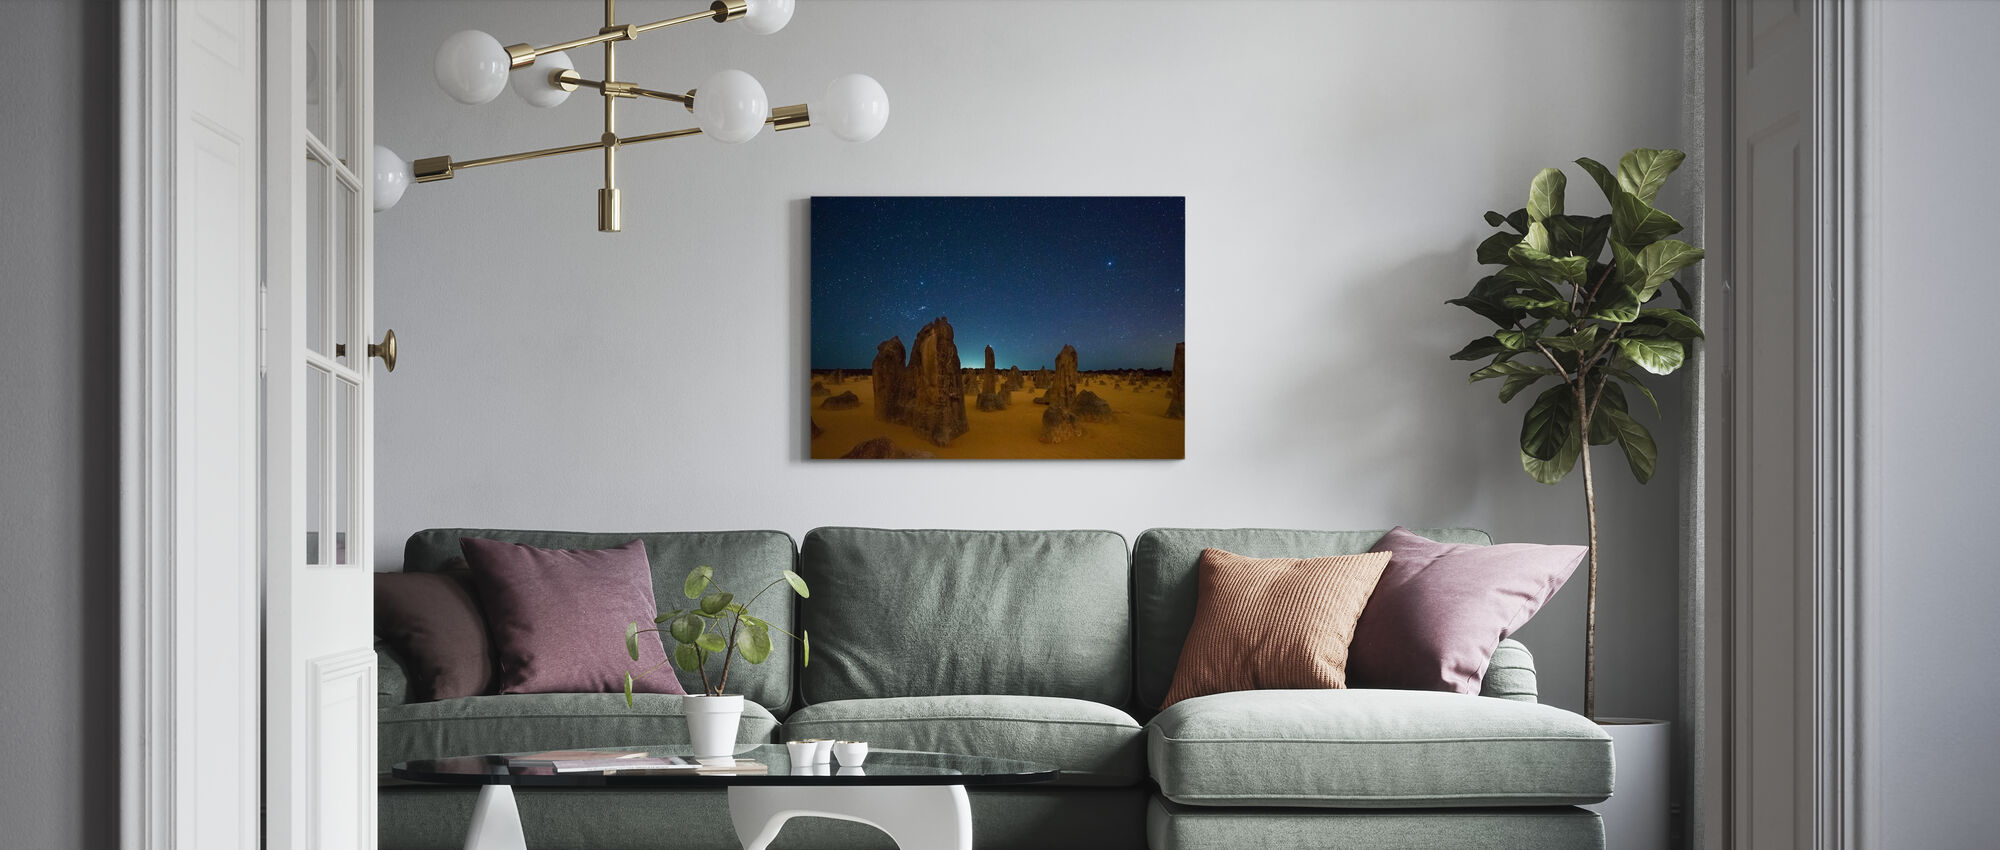 Pinnacles at Night - Canvas print - Living Room